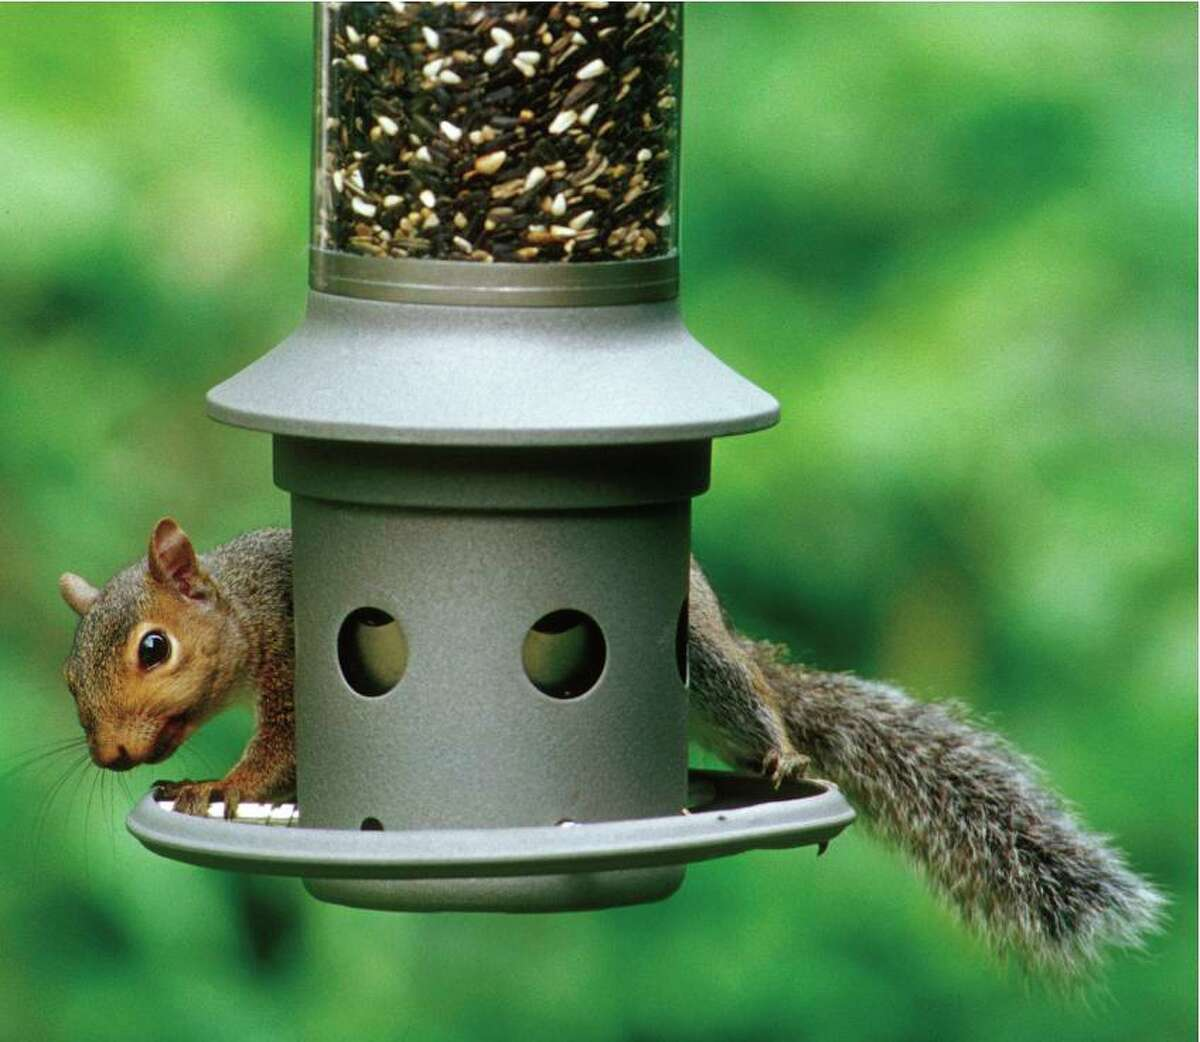 The Eliminator, a squirrel-proof bird feeder, protects your bird seed from persistent squirrels by closing the seed ports when a heavy intruder stands on the perch ring.